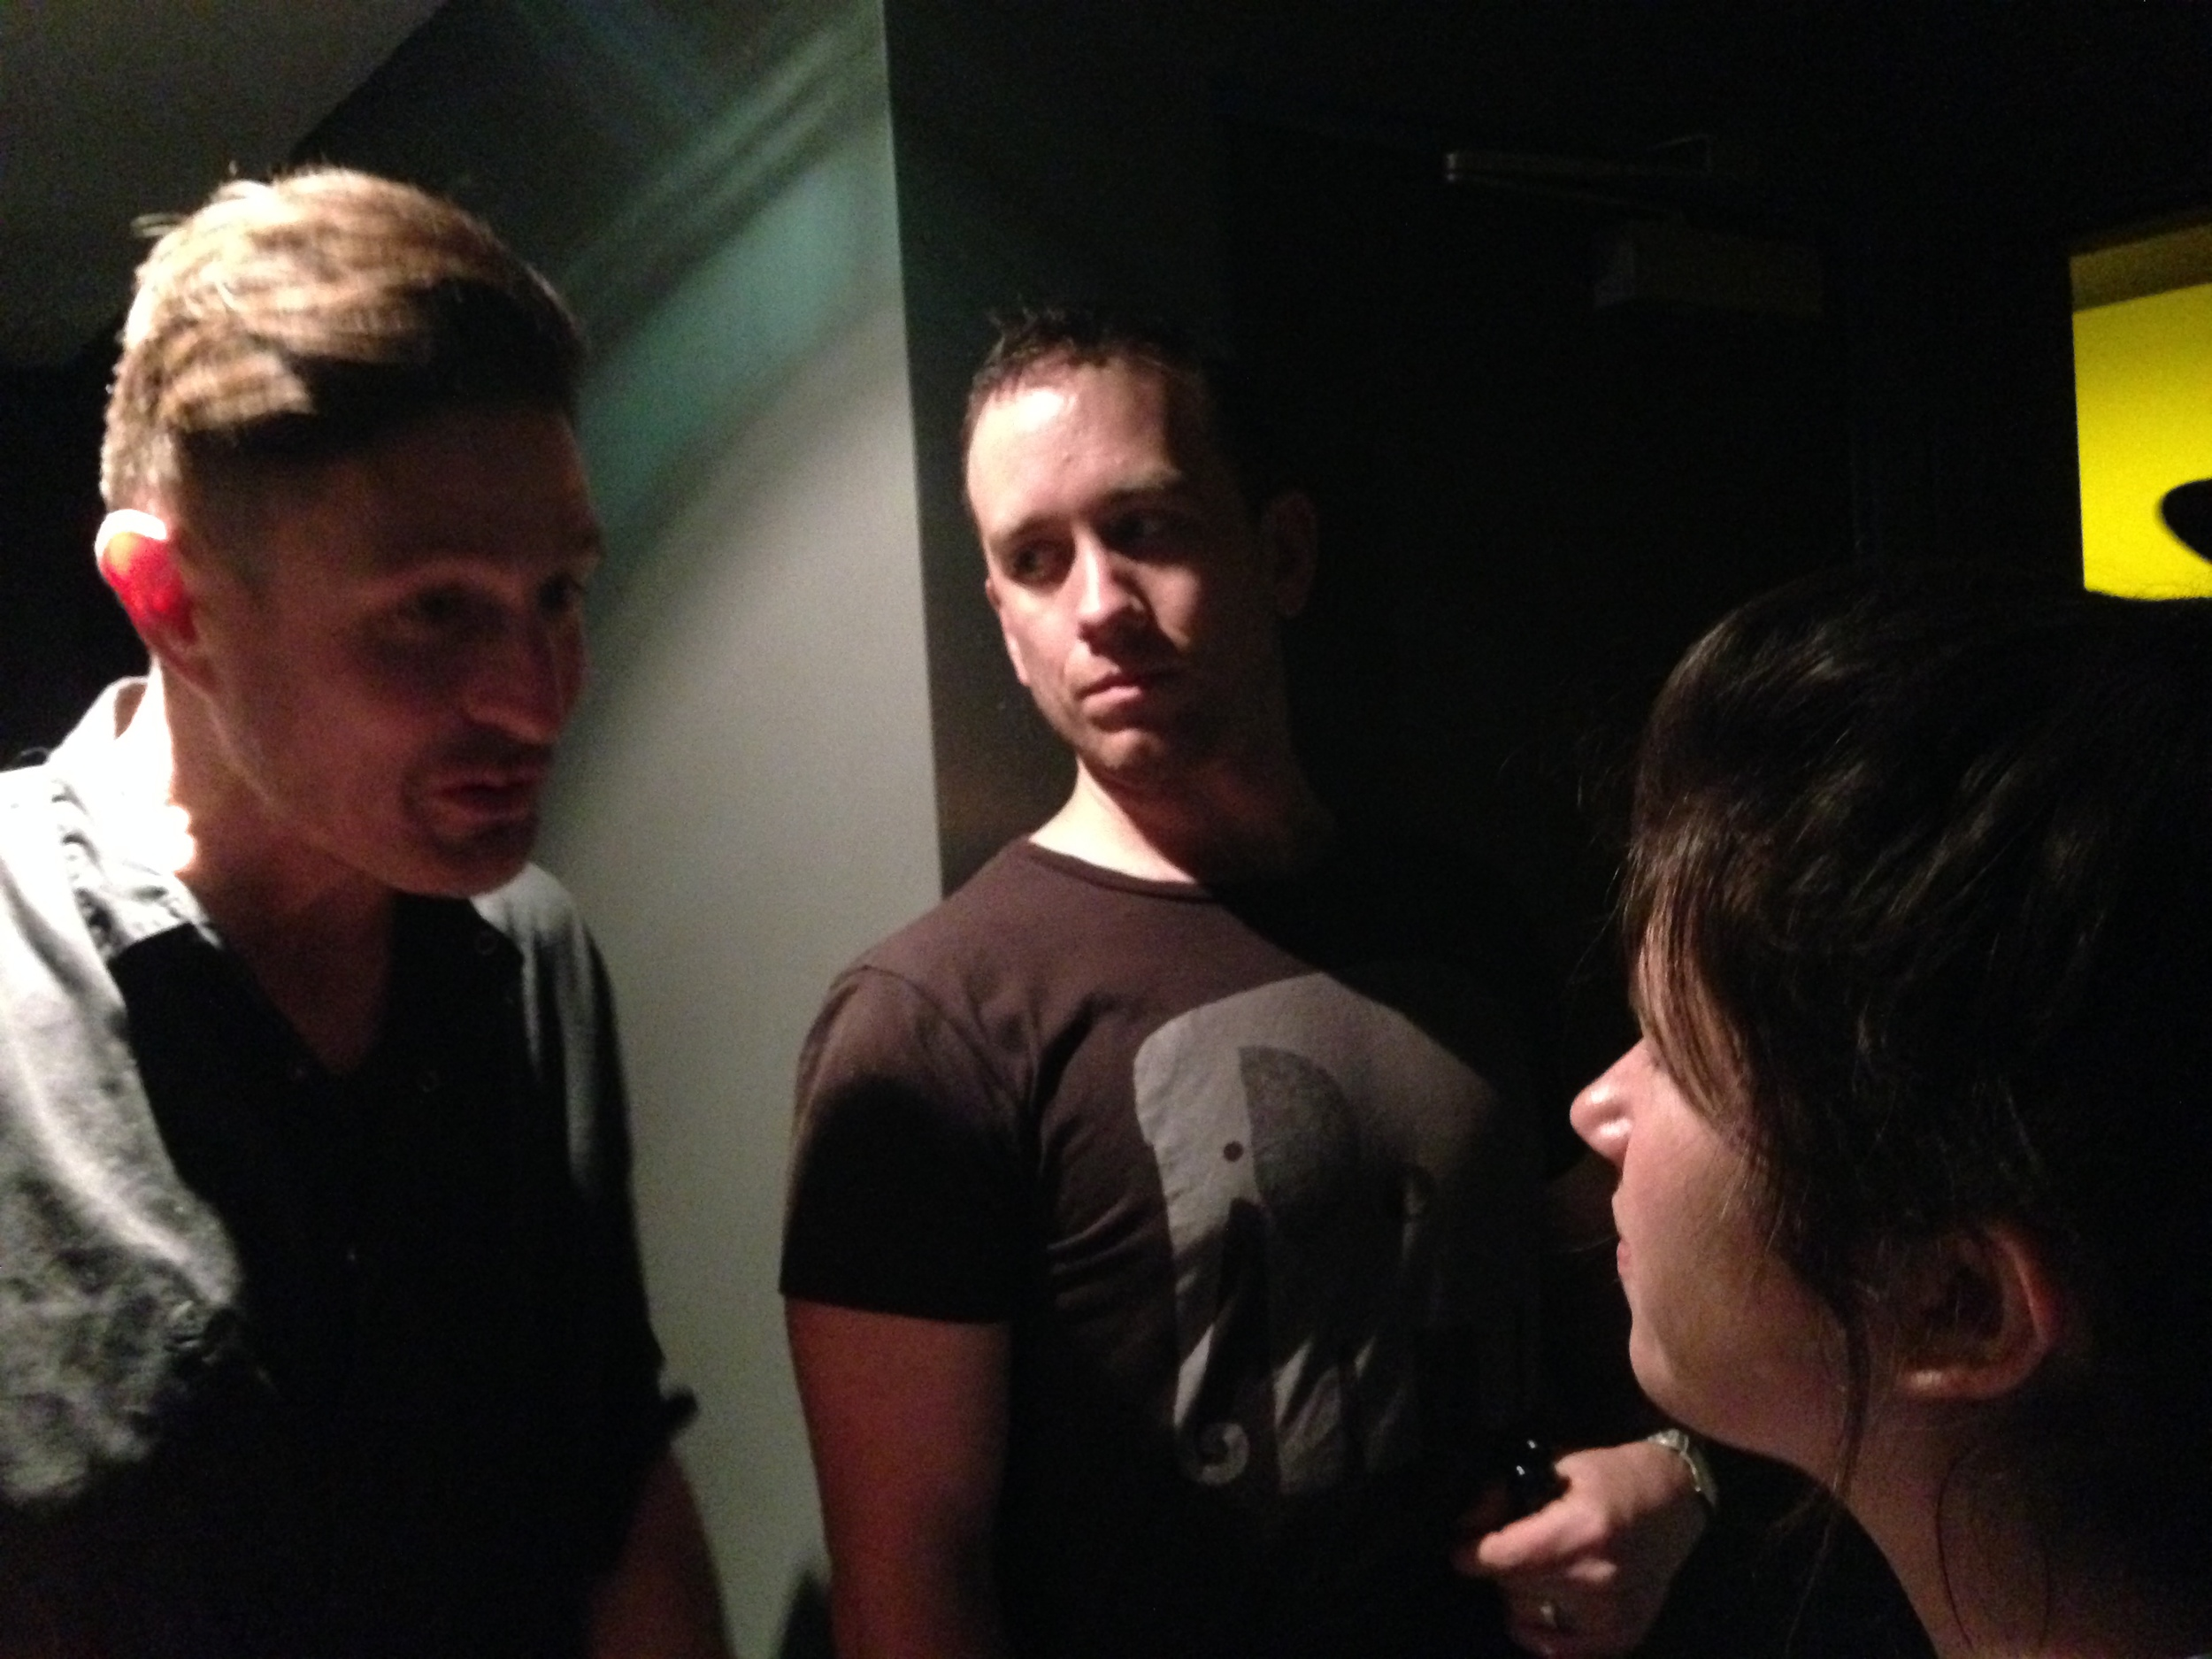 Backstage with Wil Anderson, Danny McGinlay and Becky Lucas.